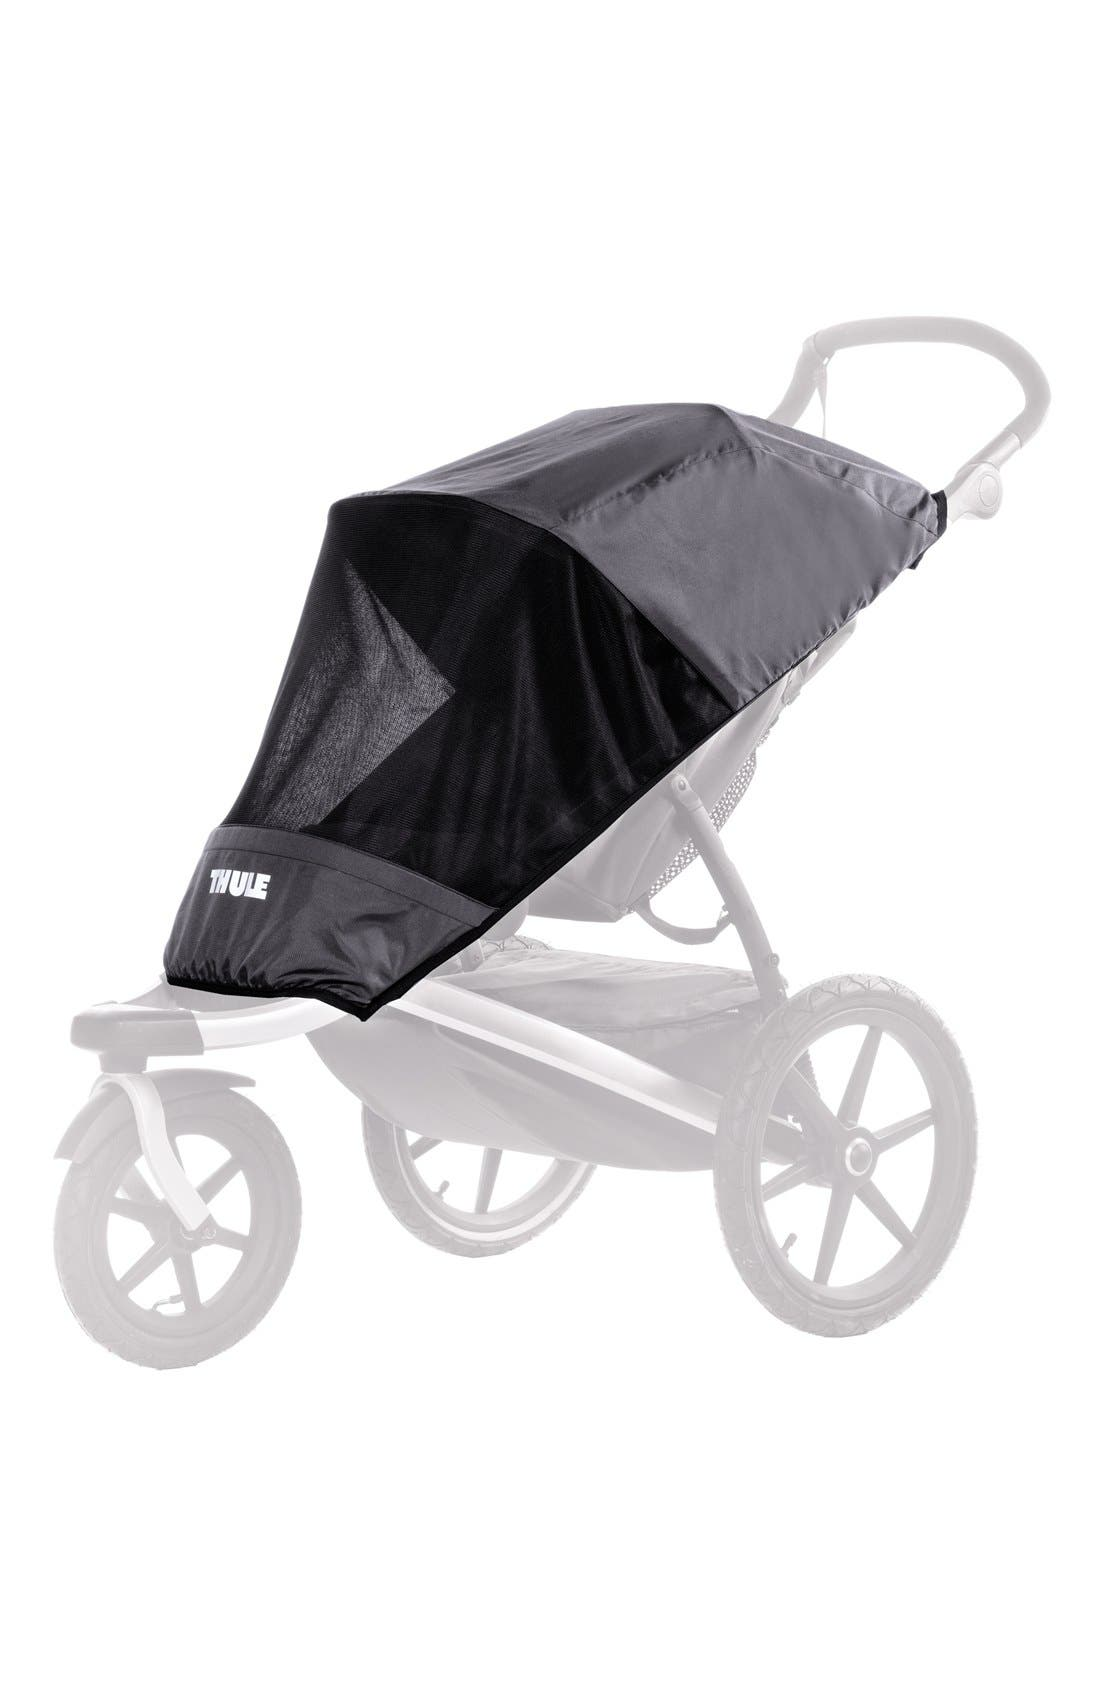 Main Image - Thule Glide Series Mesh Stroller Cover